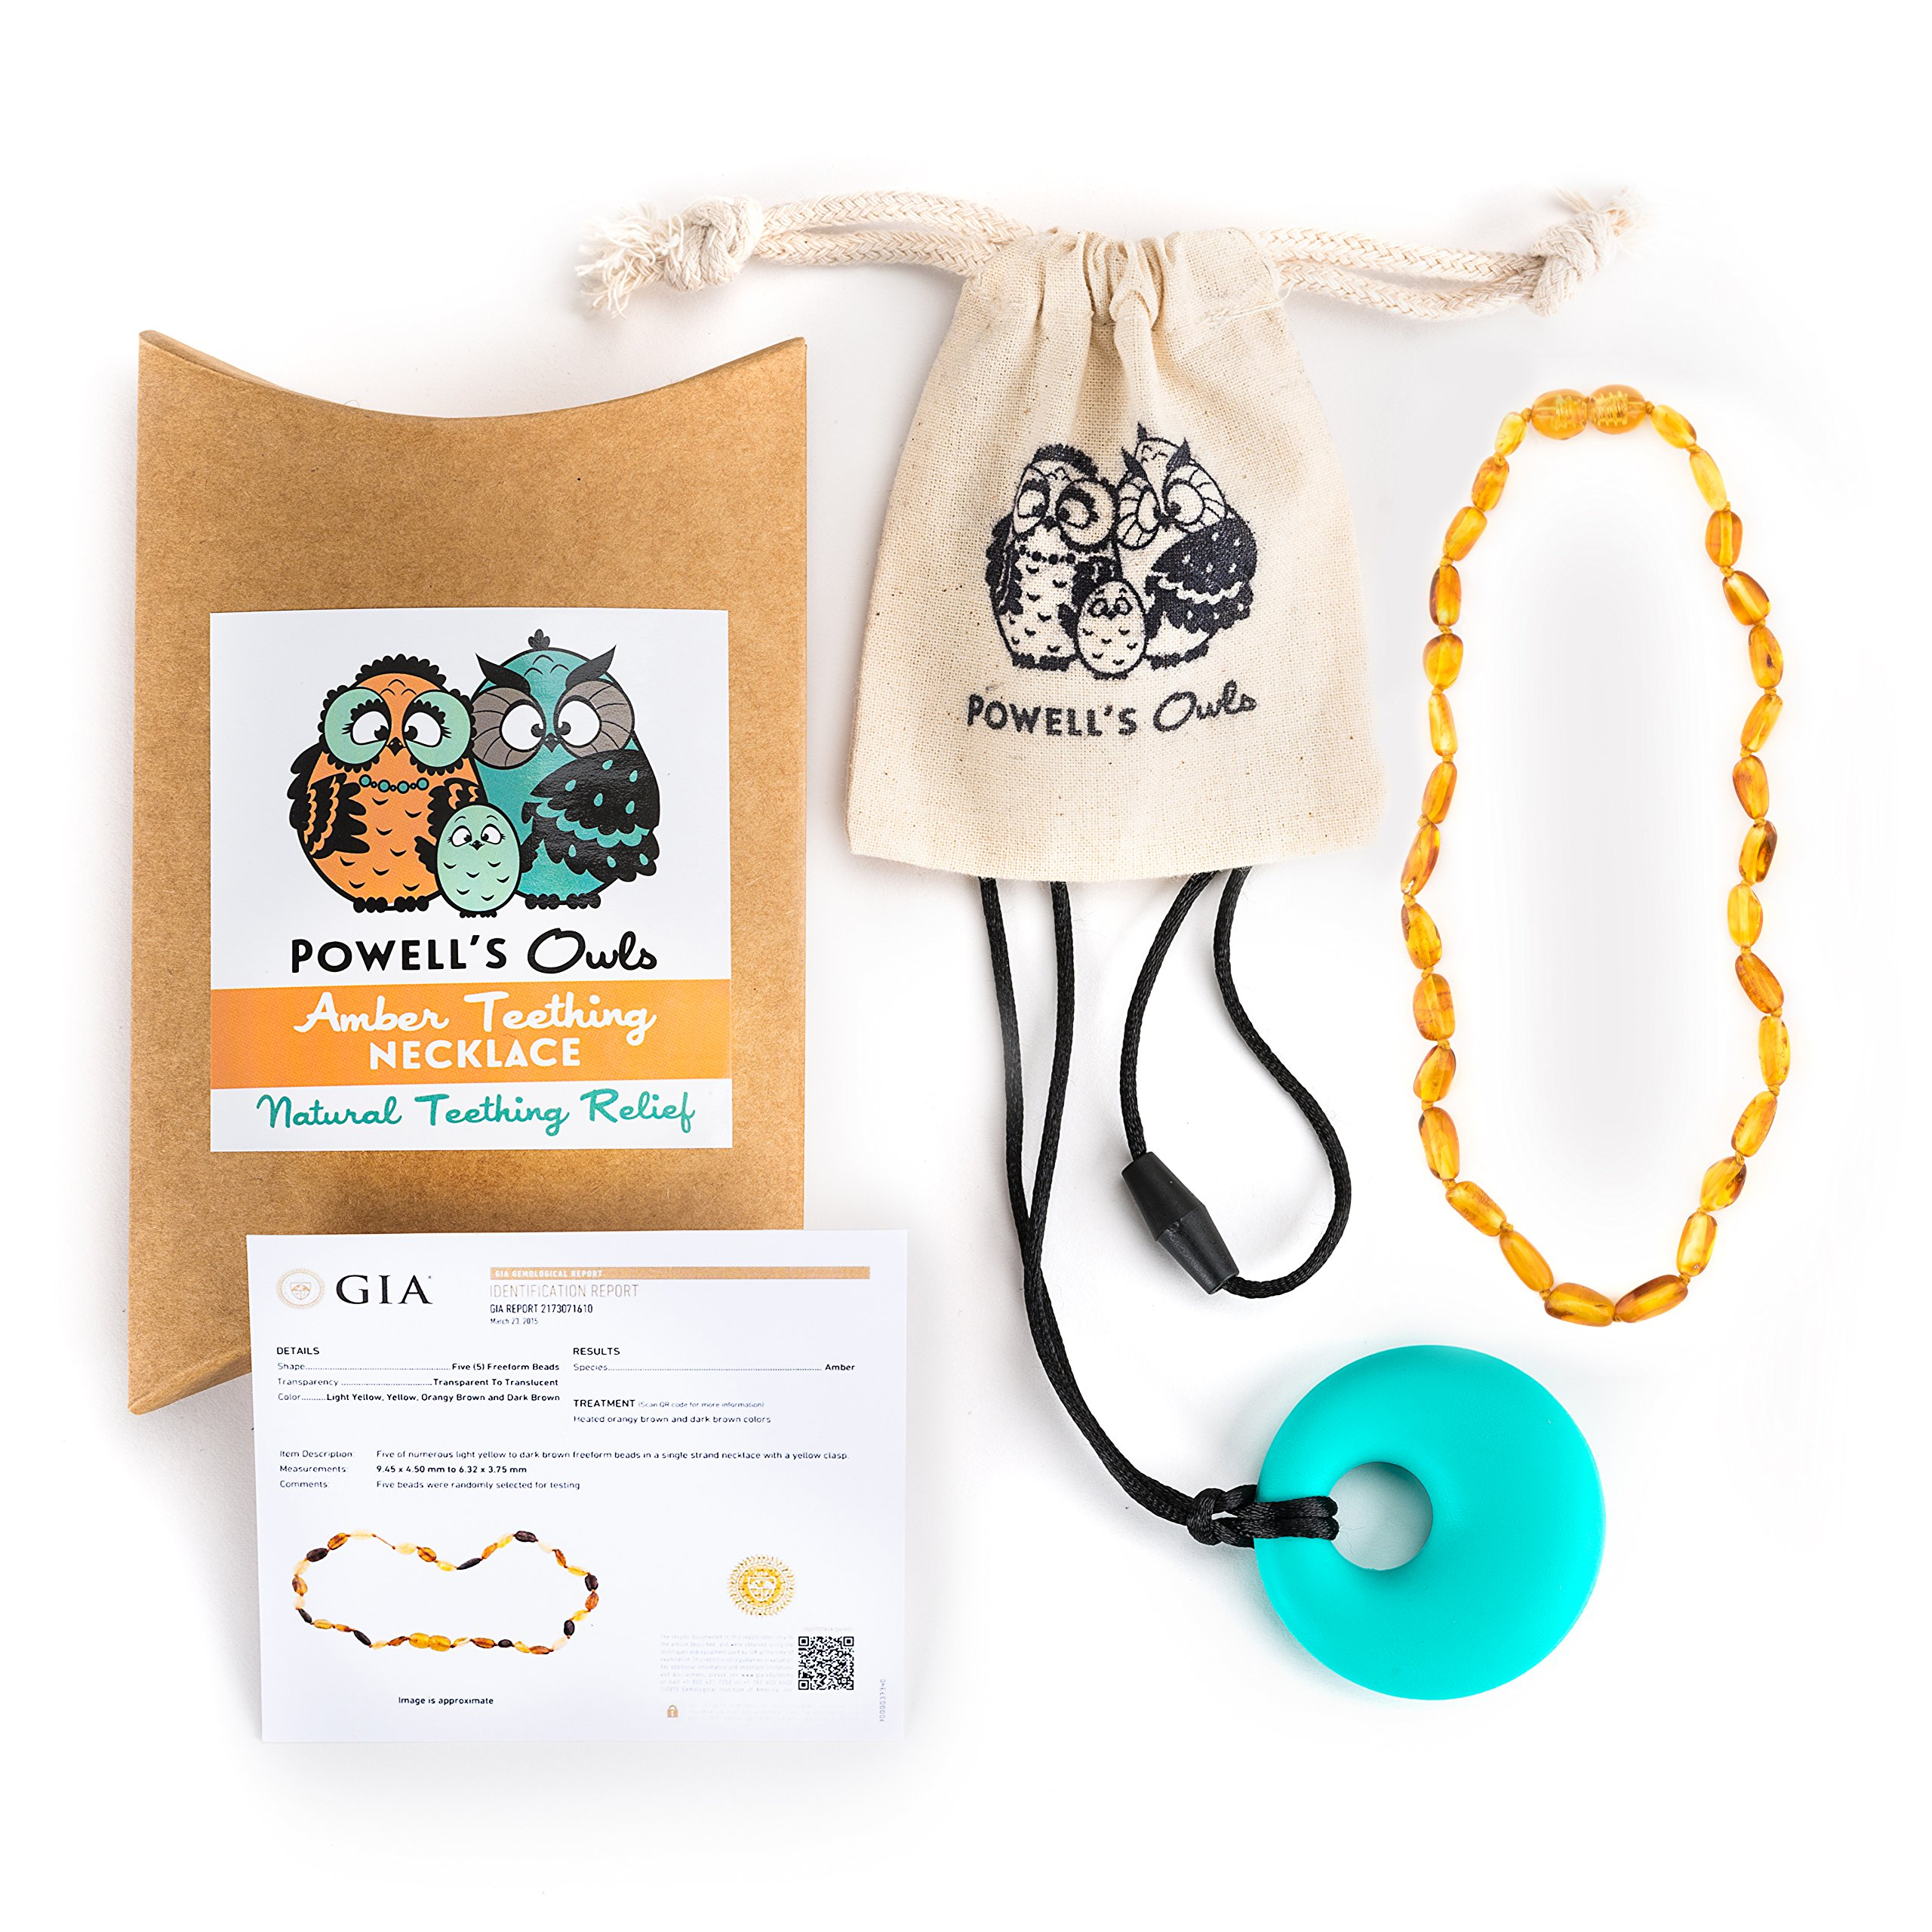 Baltic Amber Necklace Gift Set (Unisex - Honey - 12.5 Inches) Plus FREE Silicone Pendant ($15 Value) Handcrafted, Lab-Tested, Authentic Amber - Natural Pain Relief